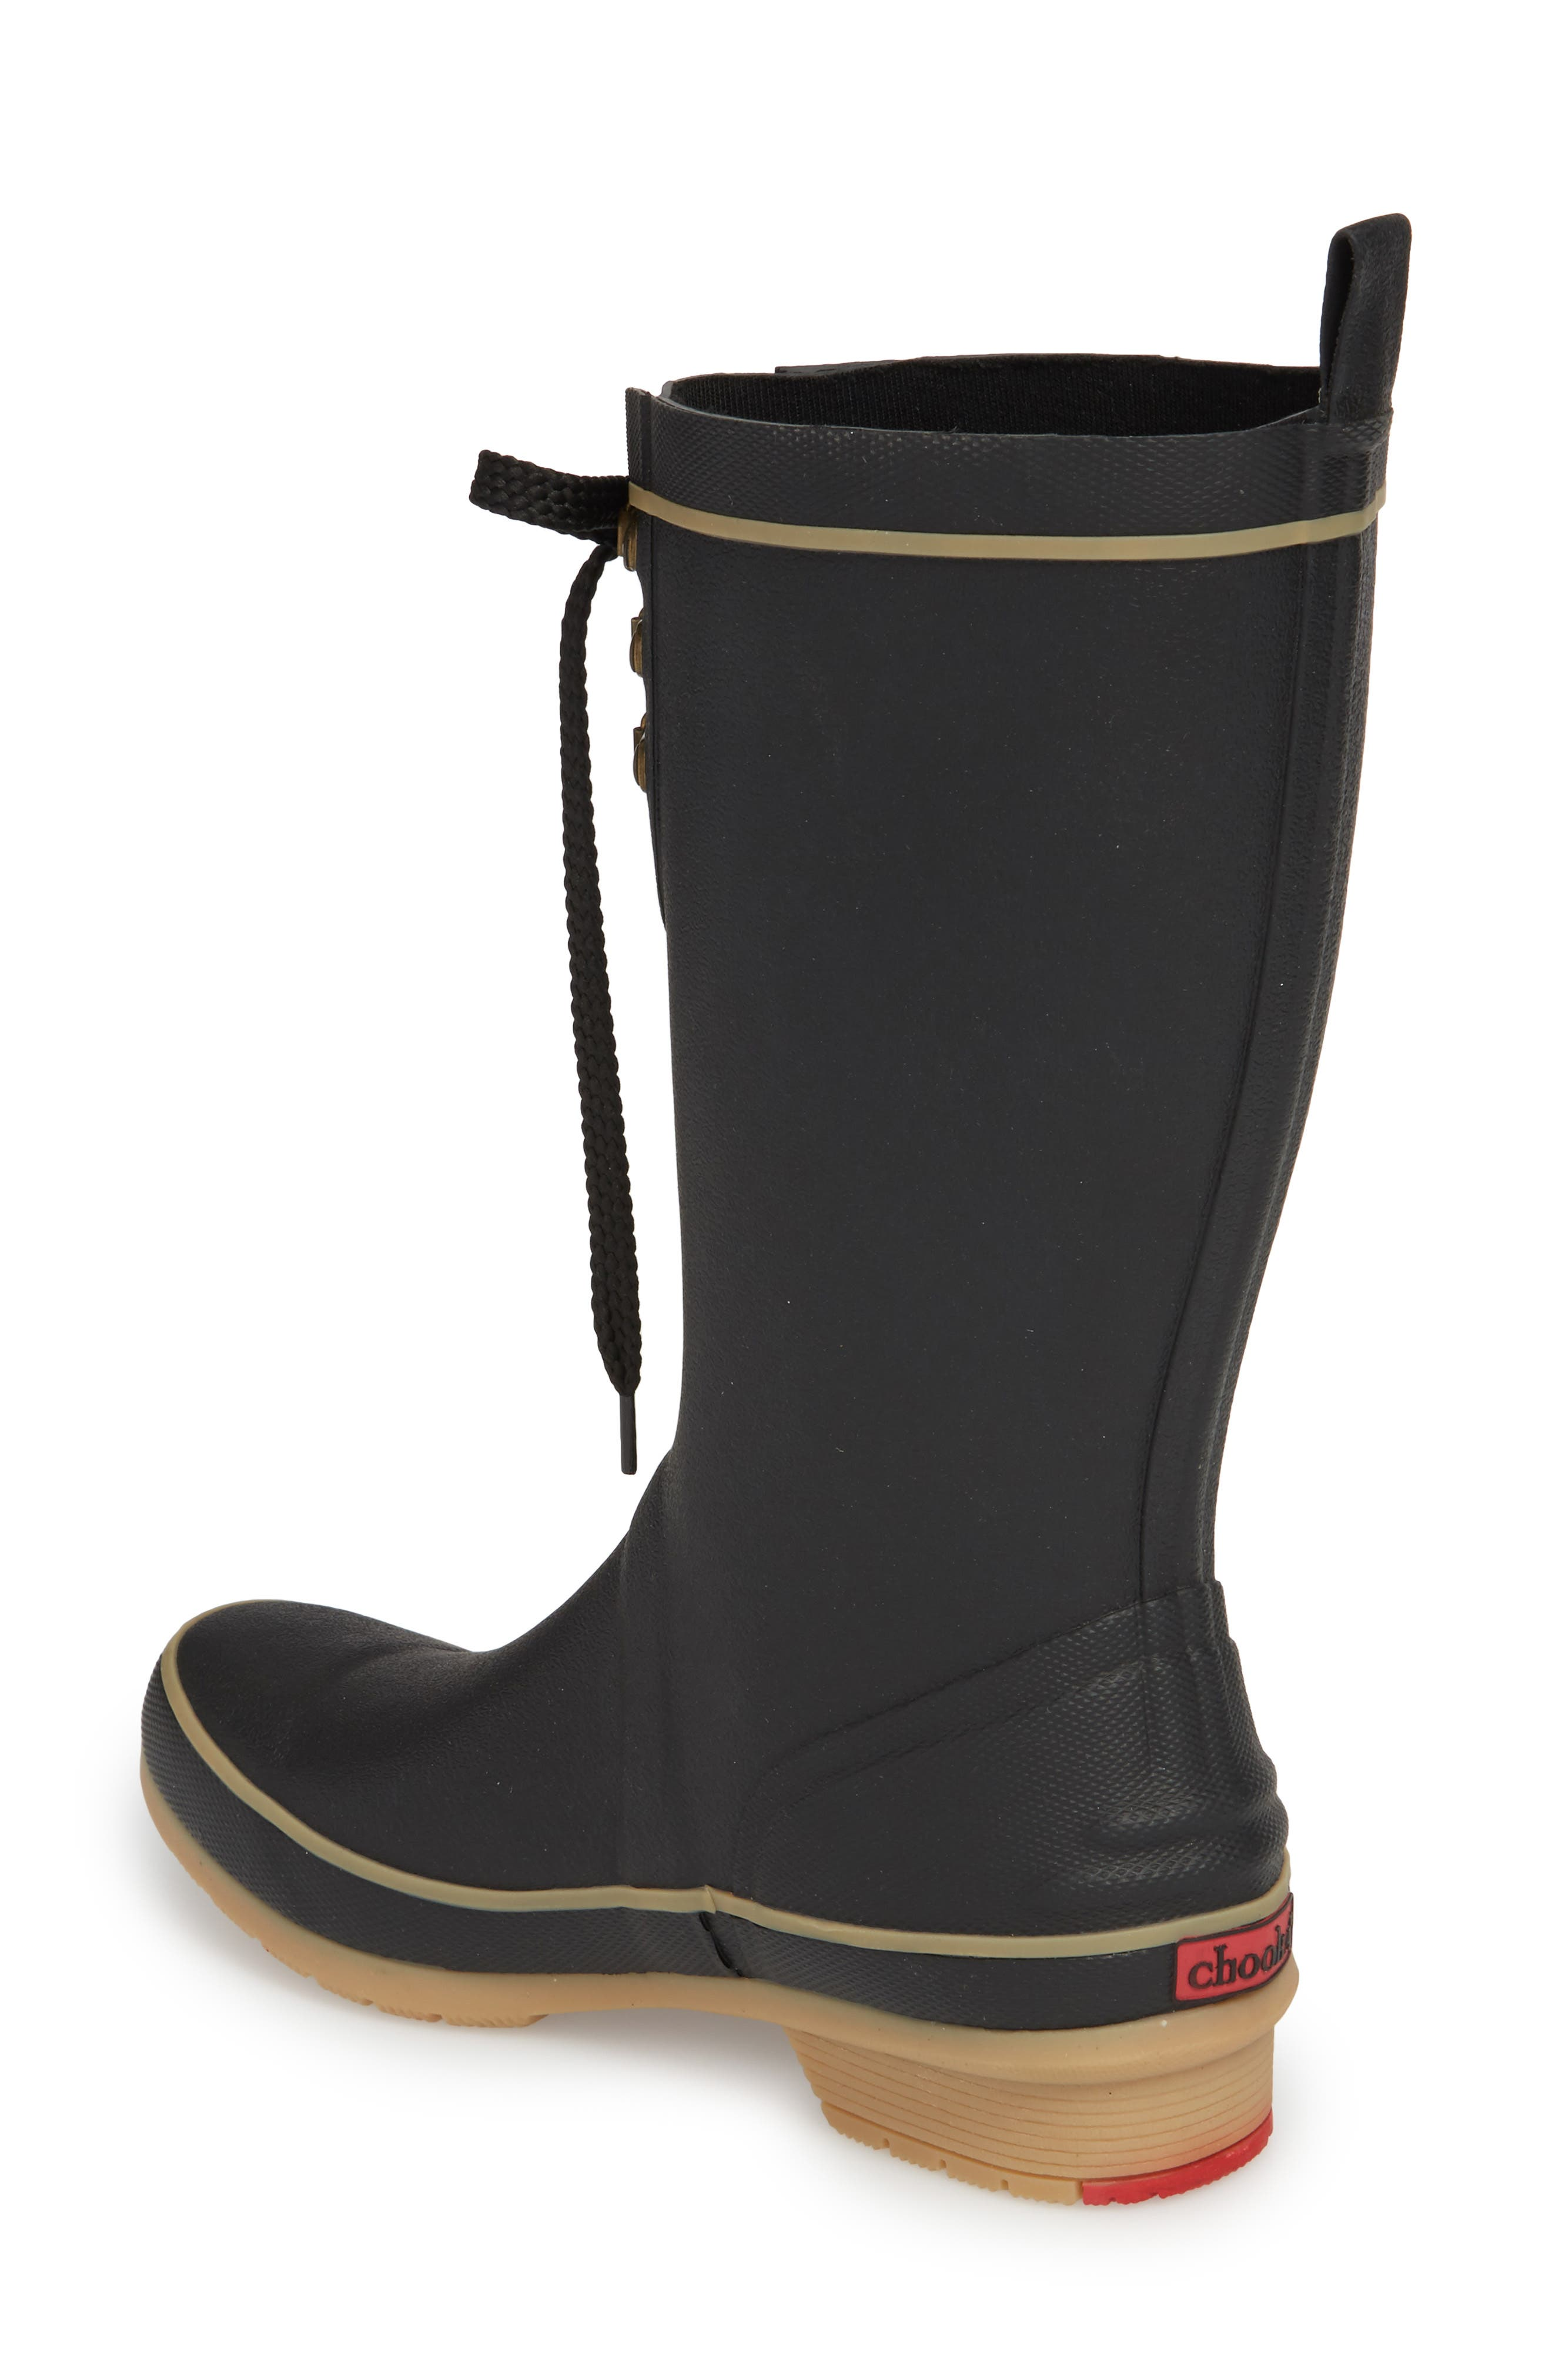 Whidbey Rain Boots,                             Alternate thumbnail 2, color,                             BLACK